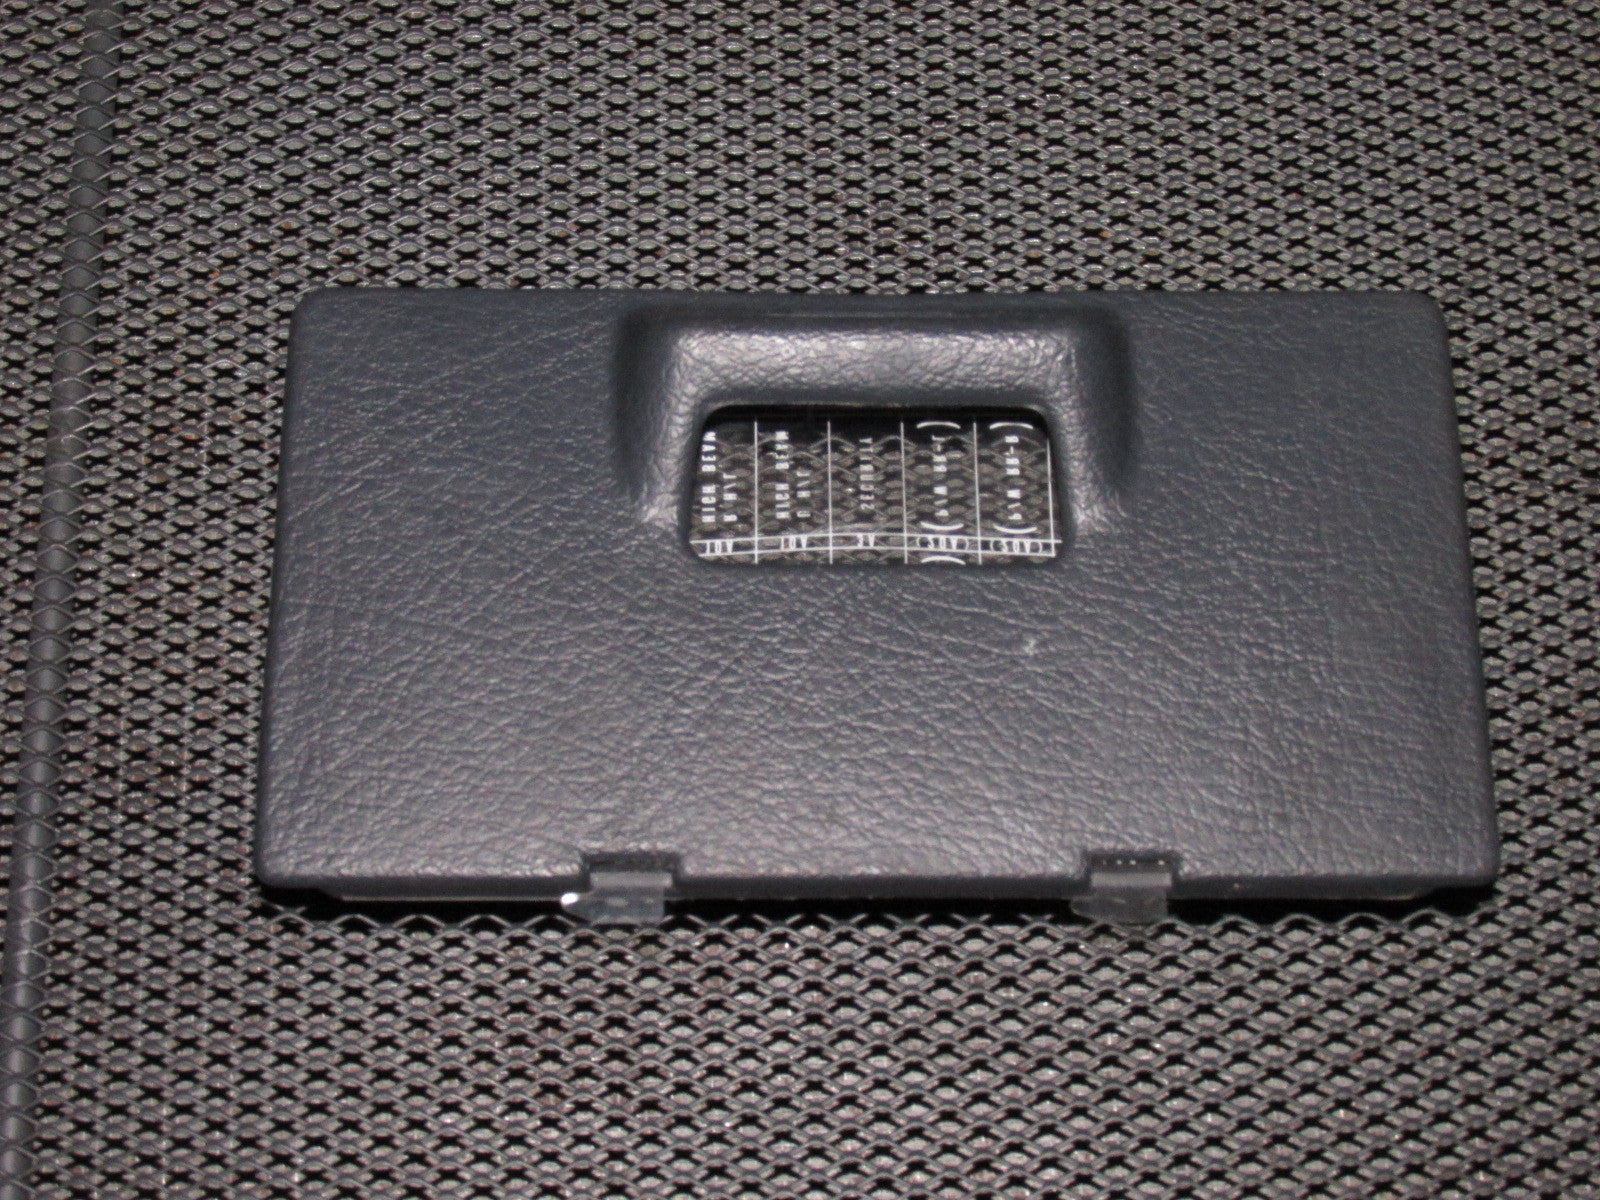 IMG_0046?v=1412302171 96 97 98 99 00 honda civic oem interior fuse box cover 99 civic fuse box diagram at n-0.co